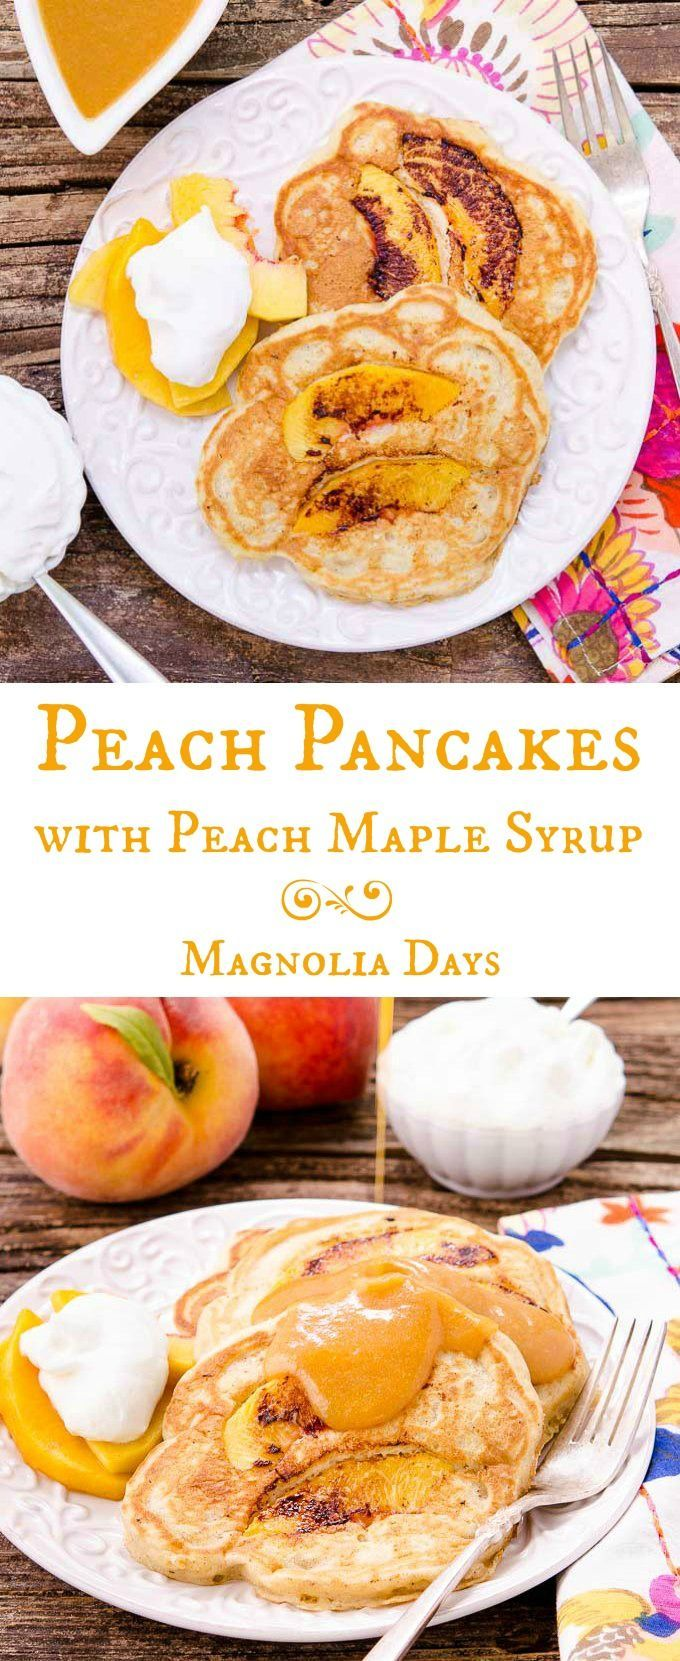 Peach Pancakes with Peach Maple Syrup are made with fresh peaches and a hint of spice. It's a delightful breakfast with summer fruit inside and out. #SundaySupper